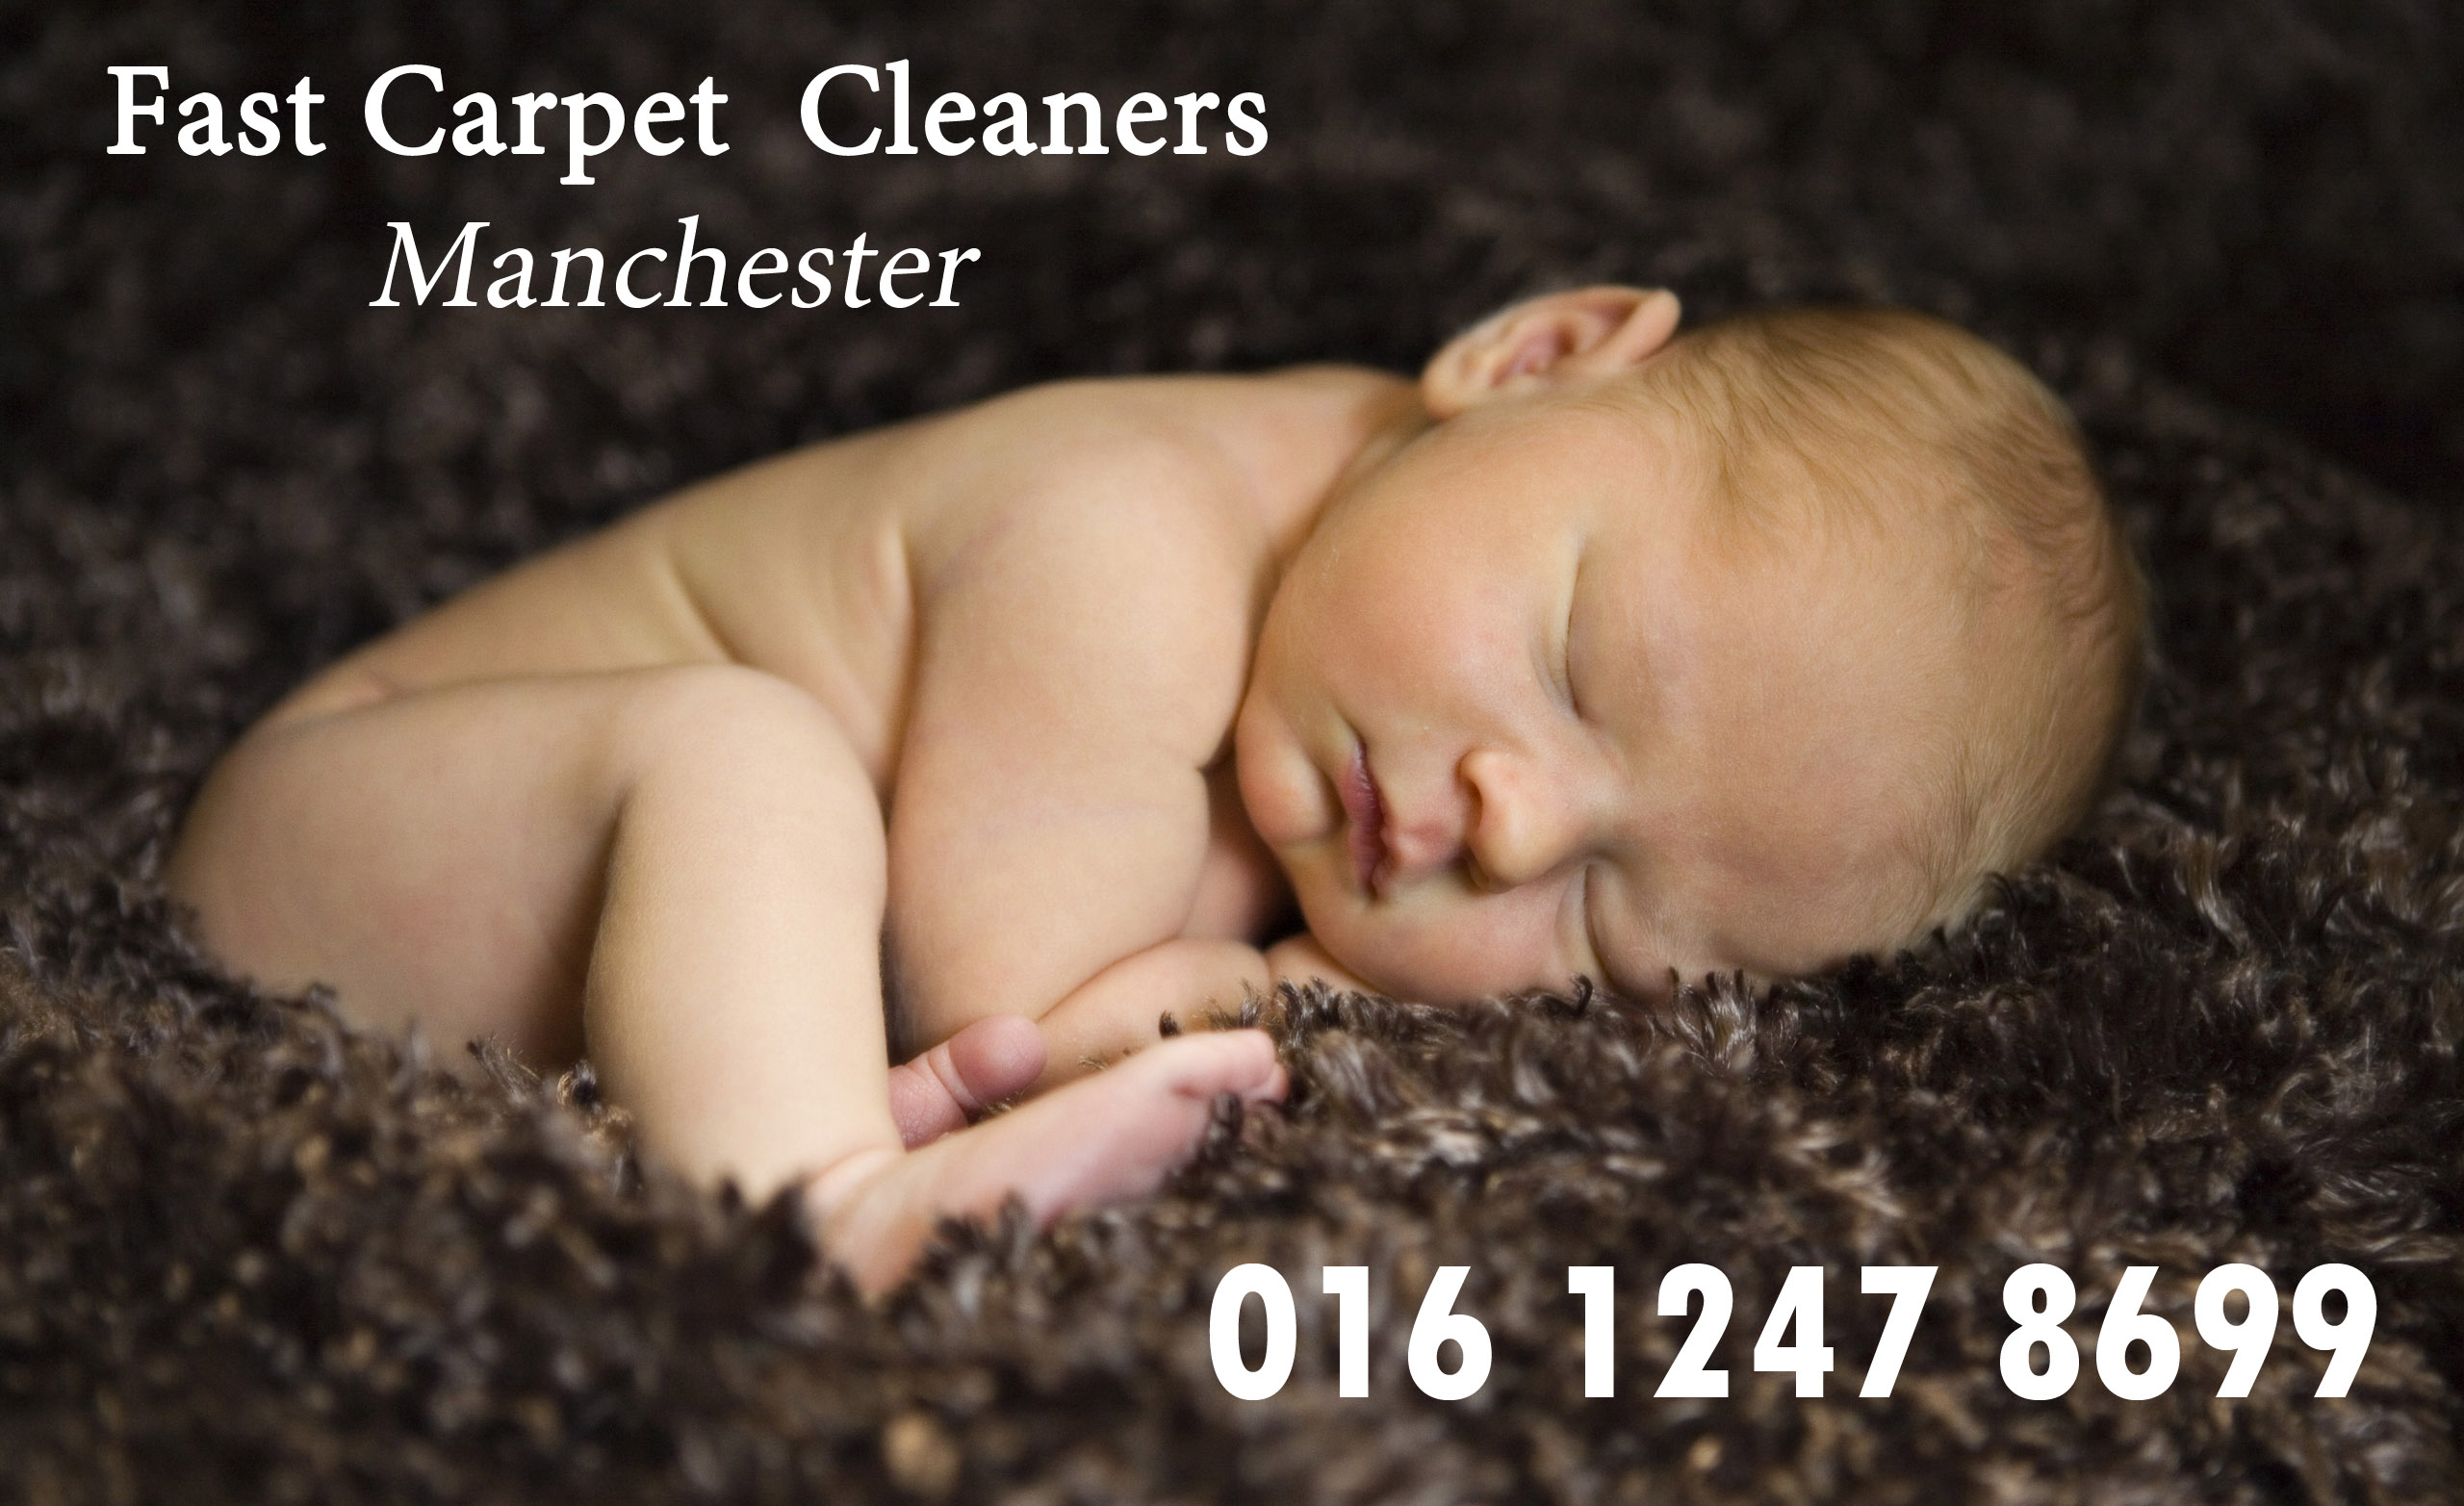 Carpet Cleaning Cleaners Manchester